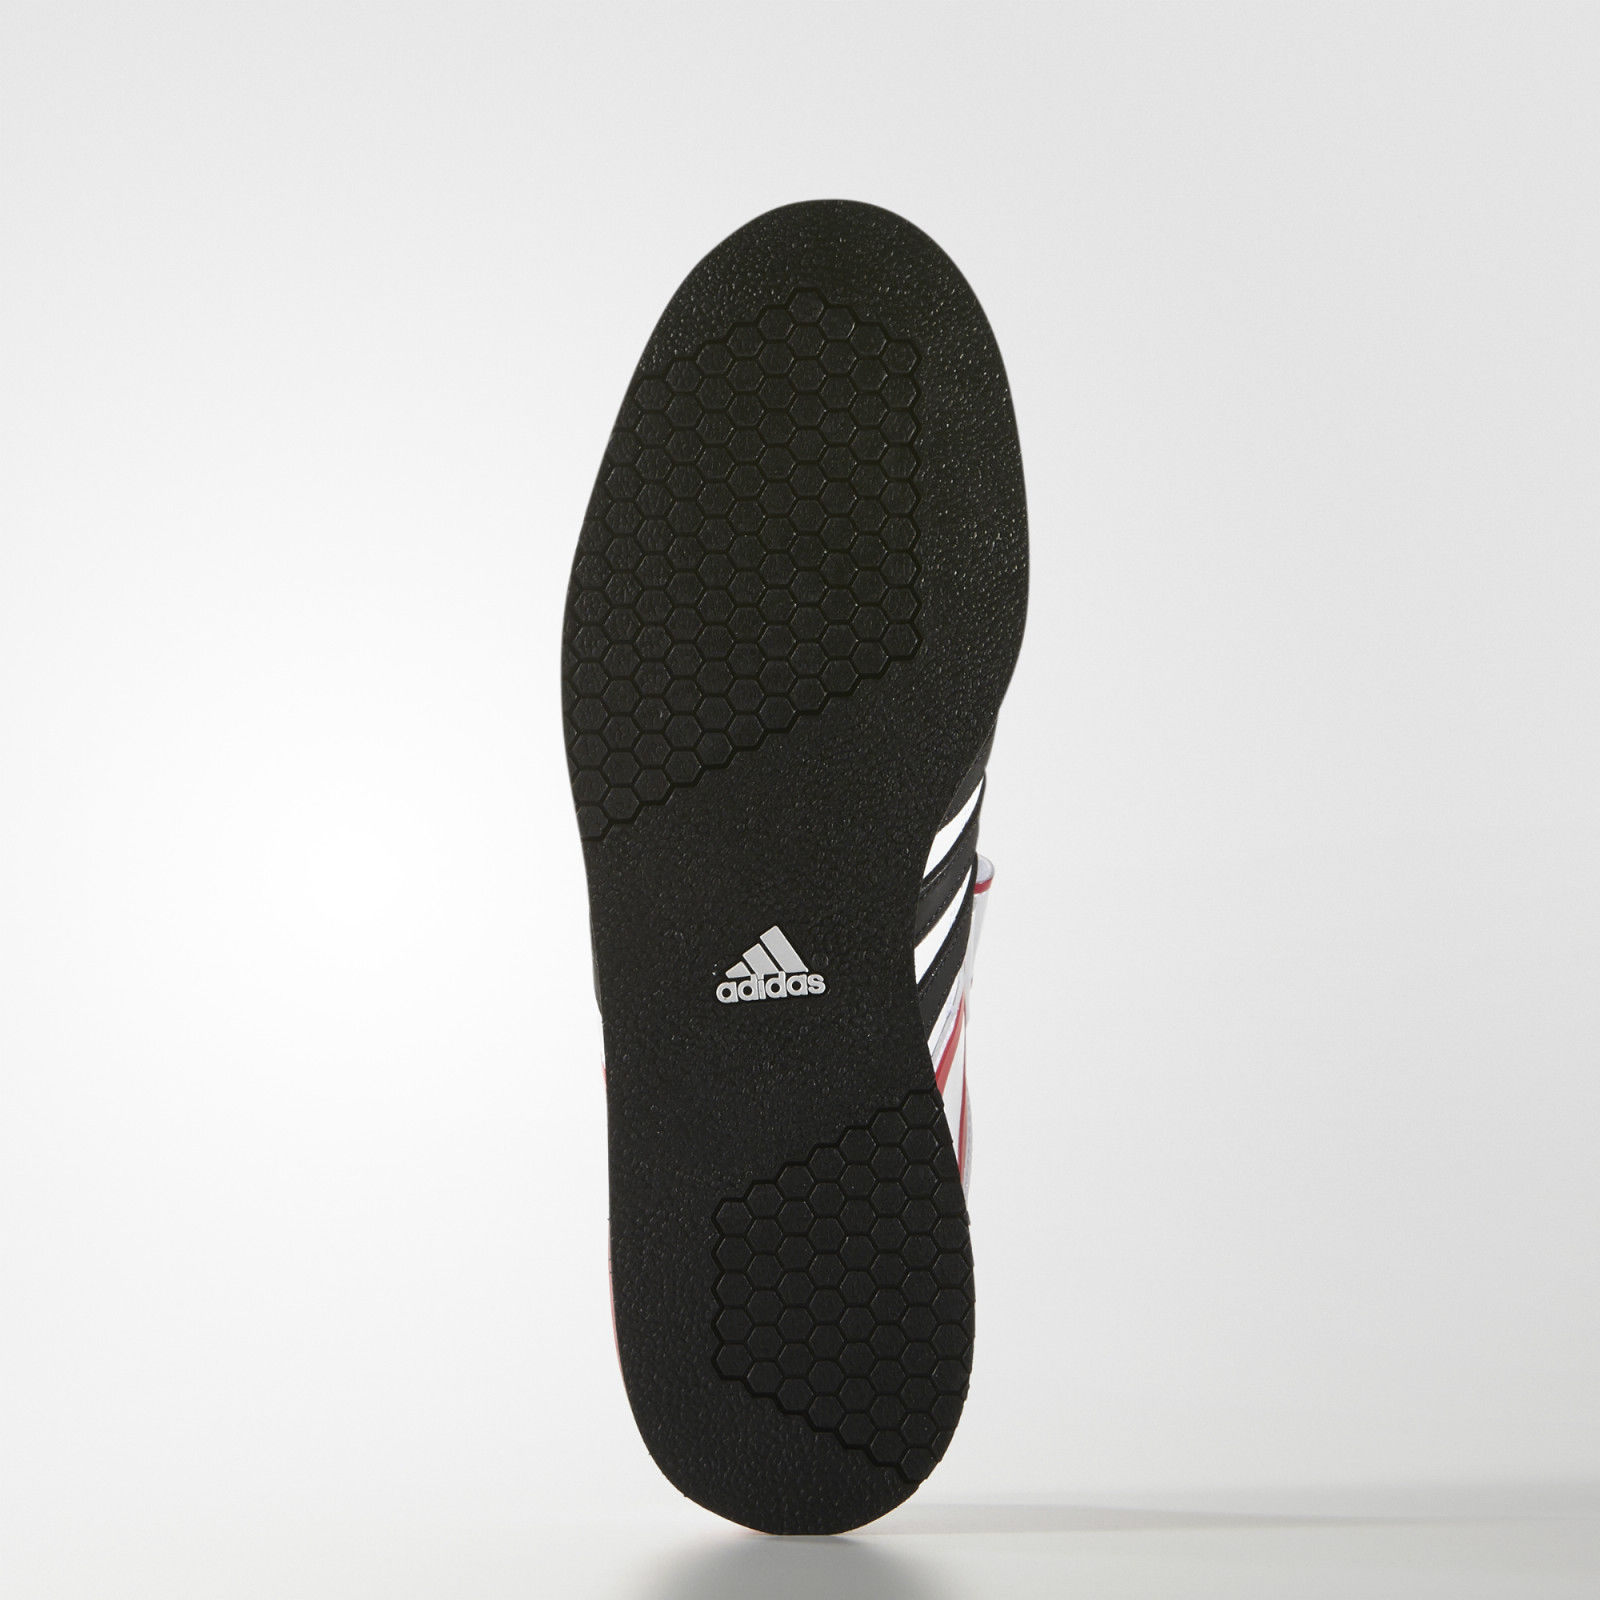 suela-zapatillas-adidas-power-perfect-2